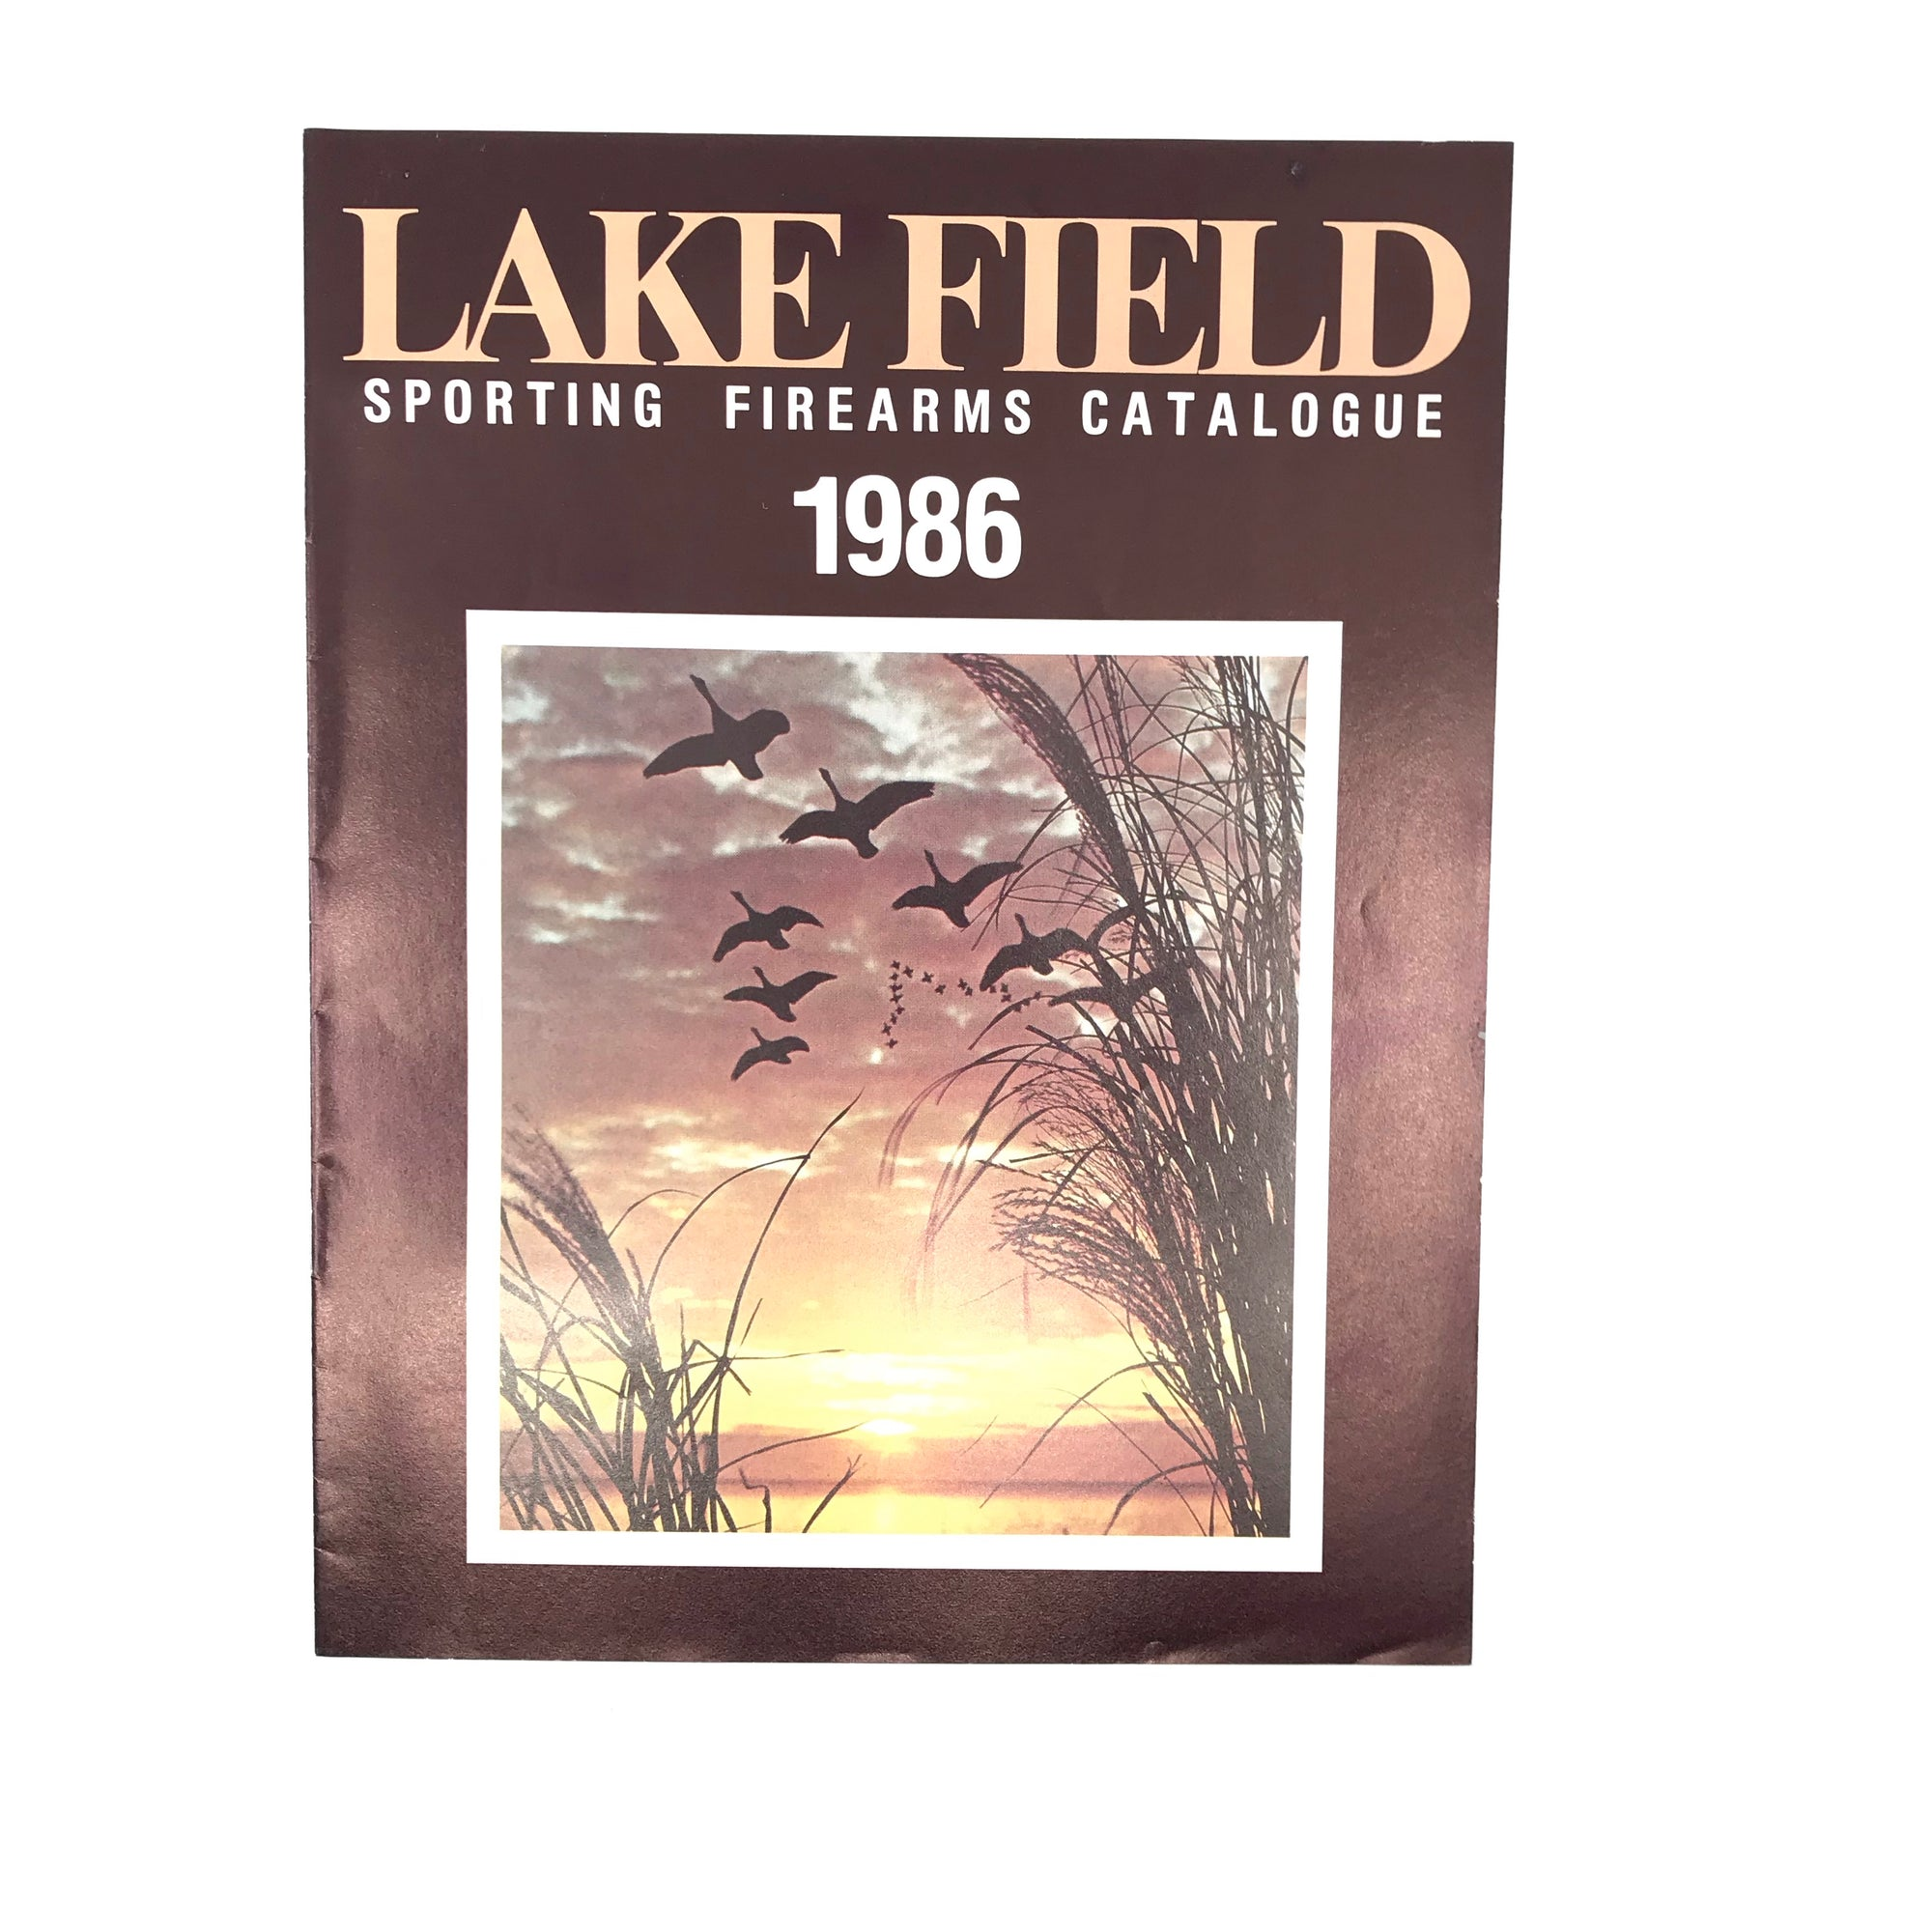 Lakefield Sporting Firearms Catalogue 1986